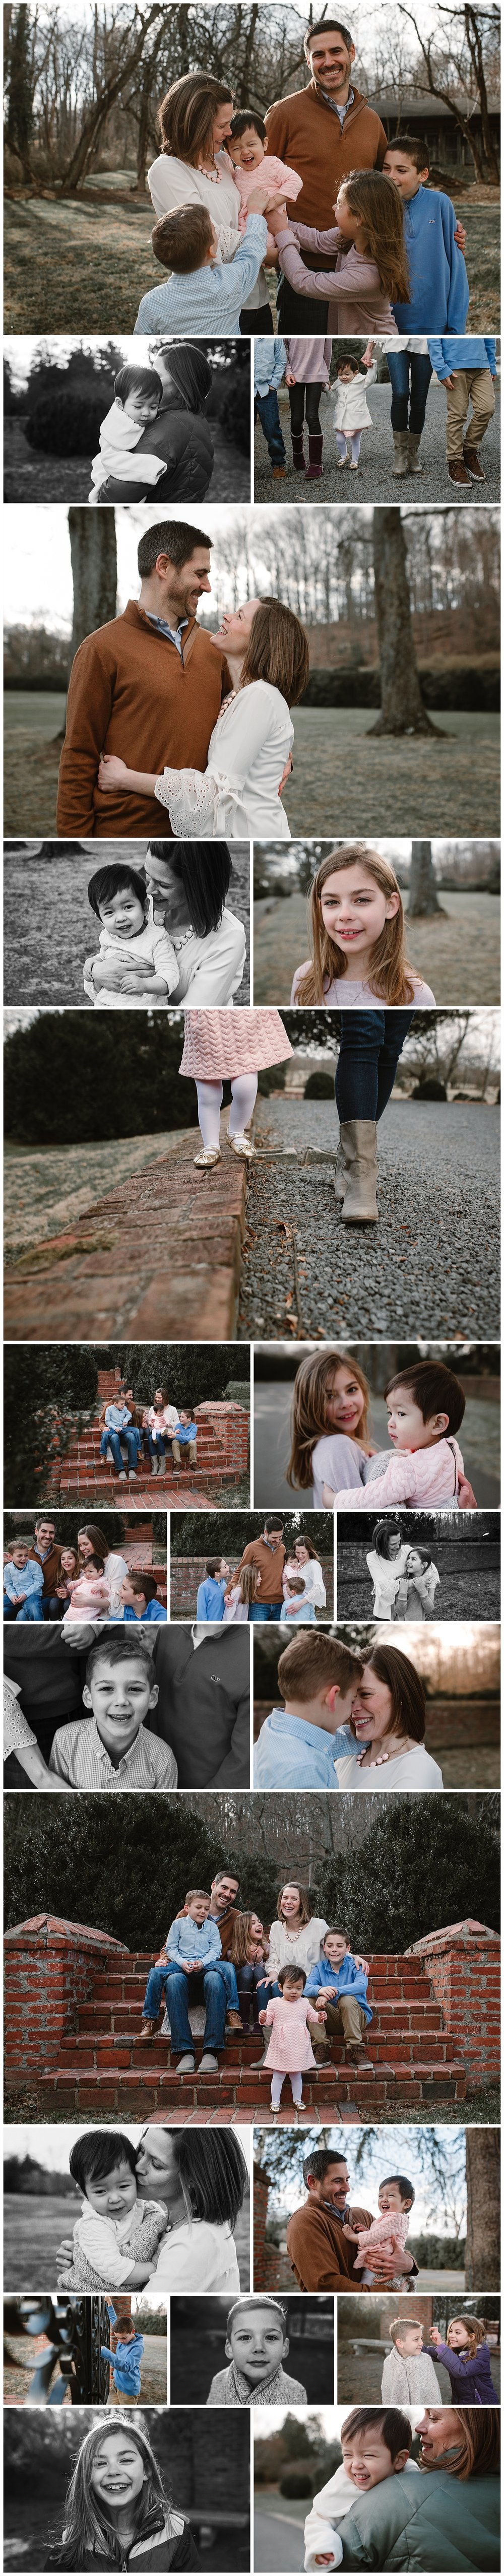 Leesburg, Virginia Adoption Family Photography